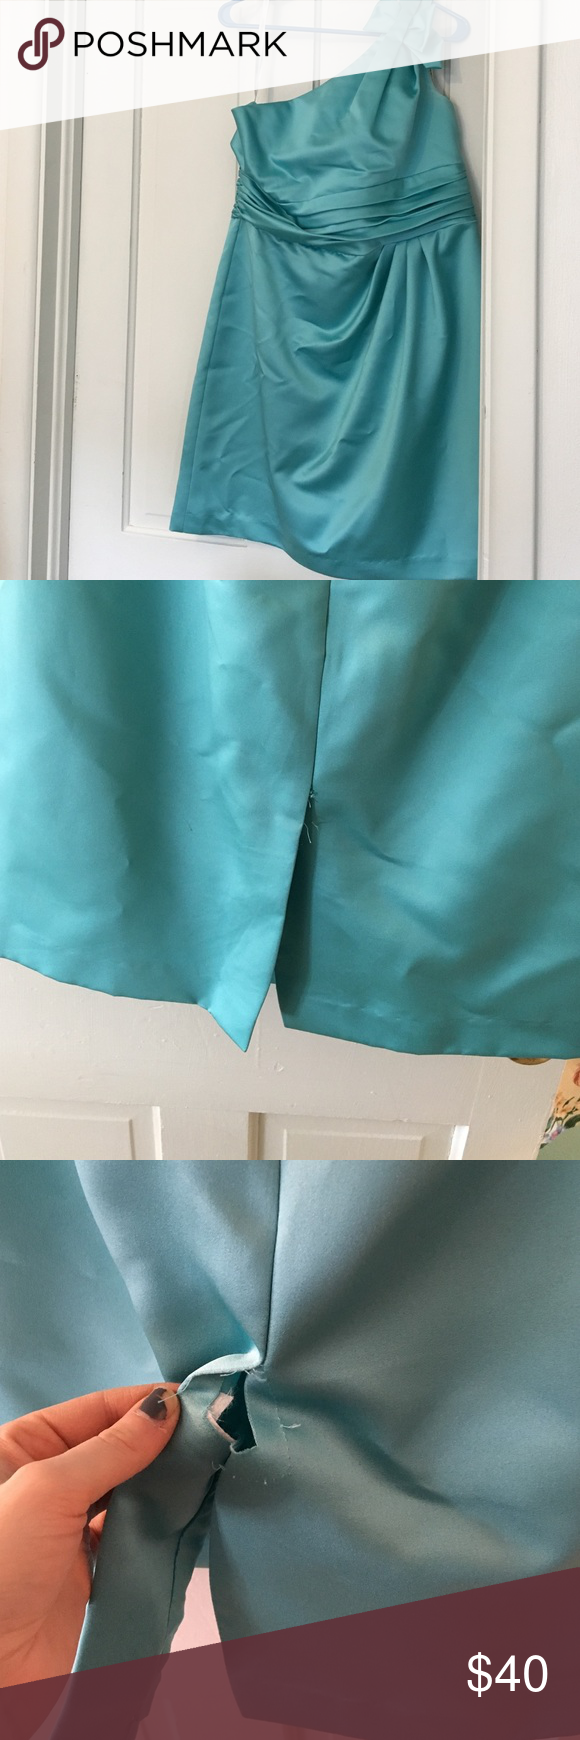 Short robin egg blue dress Short one shoulder dress. Only been worn once in a wedding. There is a rip in the seam in the back shown in pictures, it could easily be fixed by someone who can sew. It's in good condition otherwise! davids bridal Dresses One Shoulder